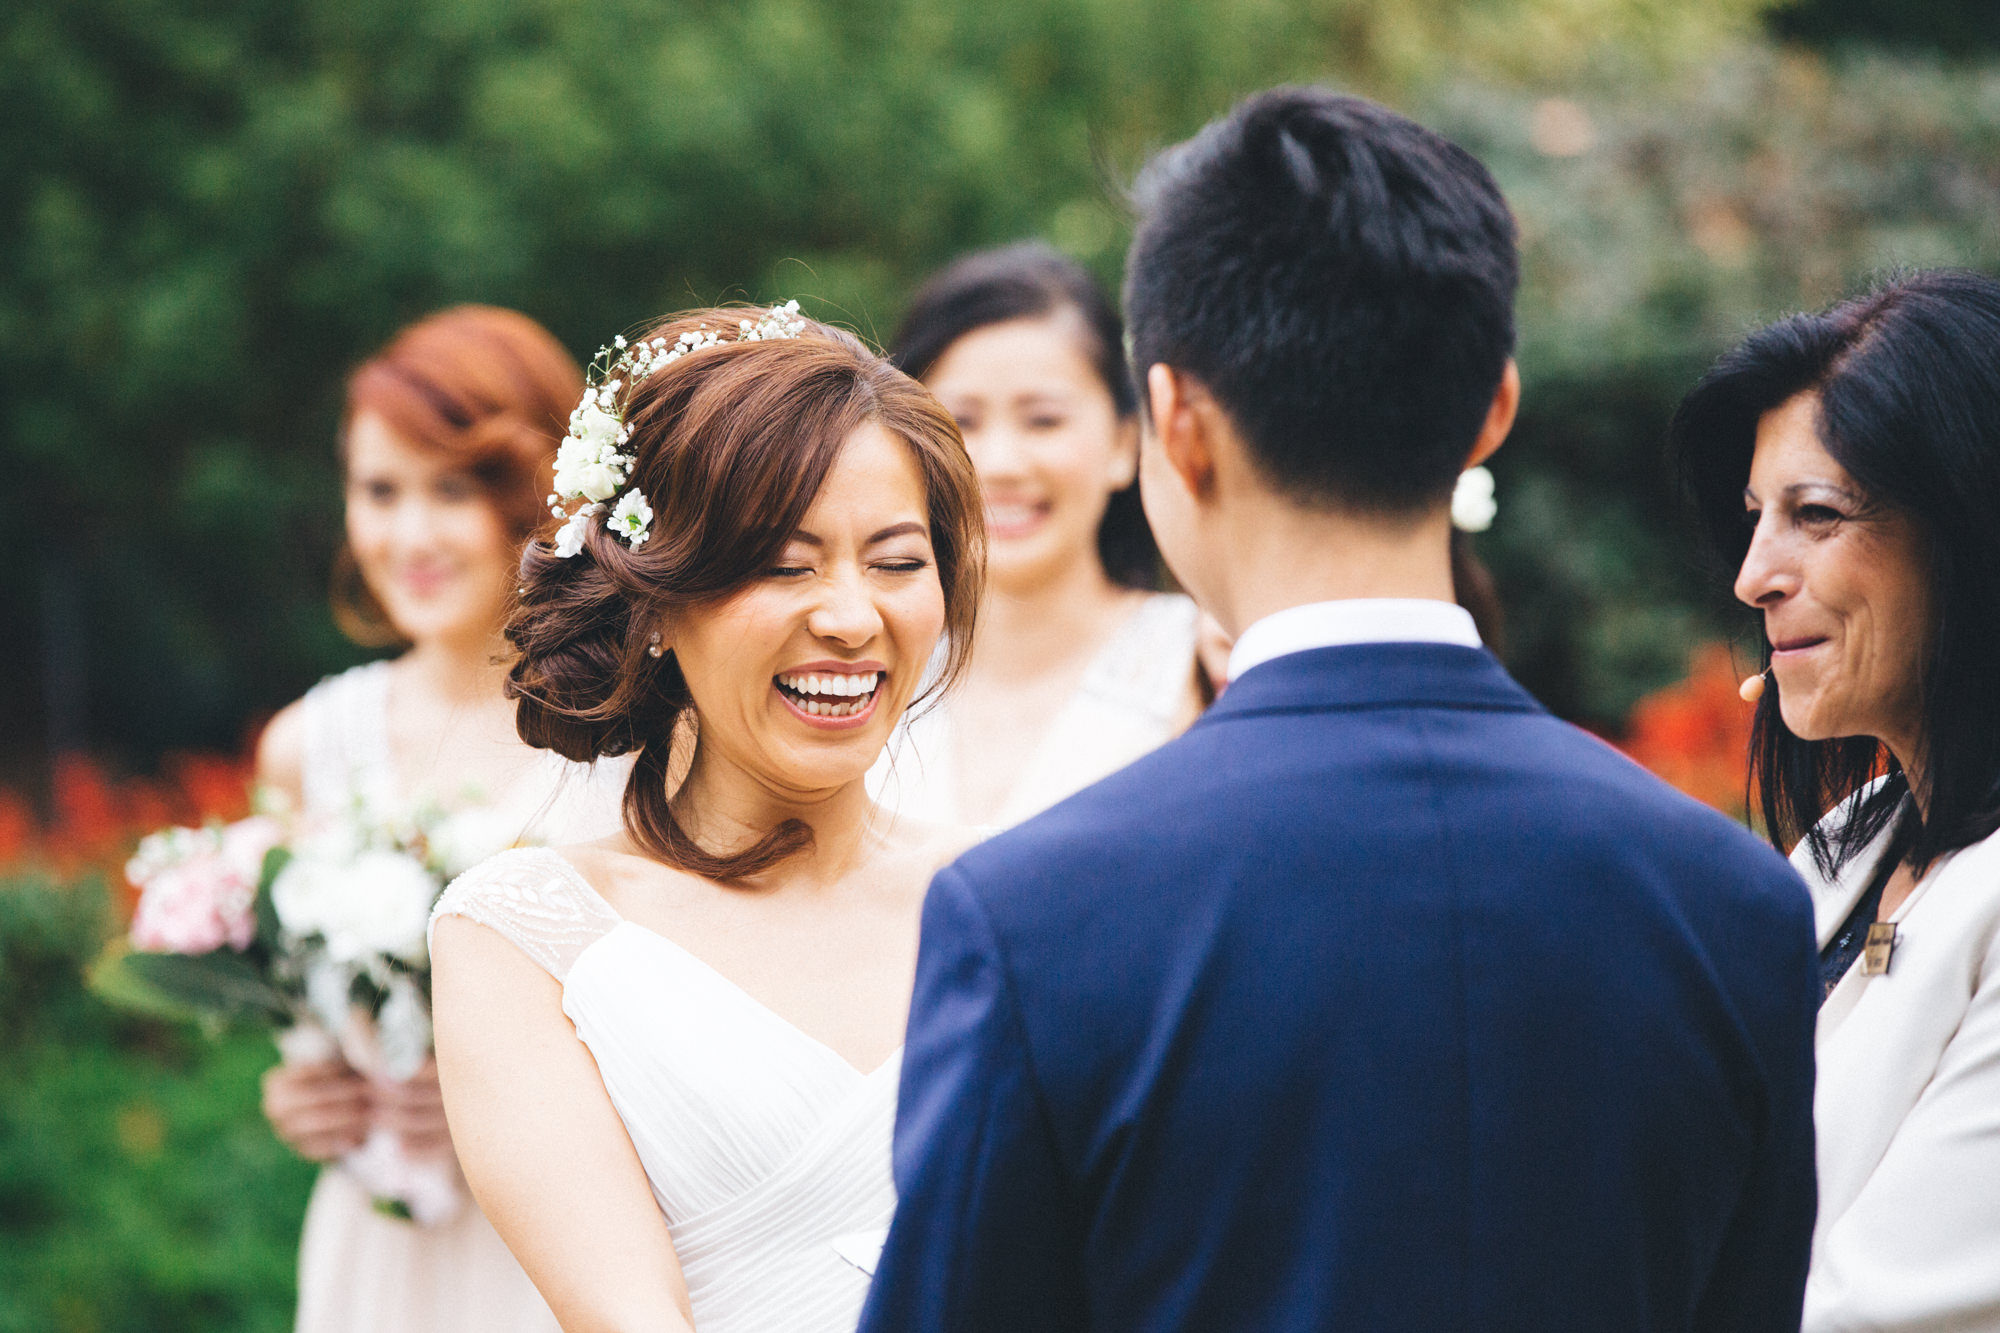 Allee & Rob - Singapore Wedding Photography (30 of 60).jpg